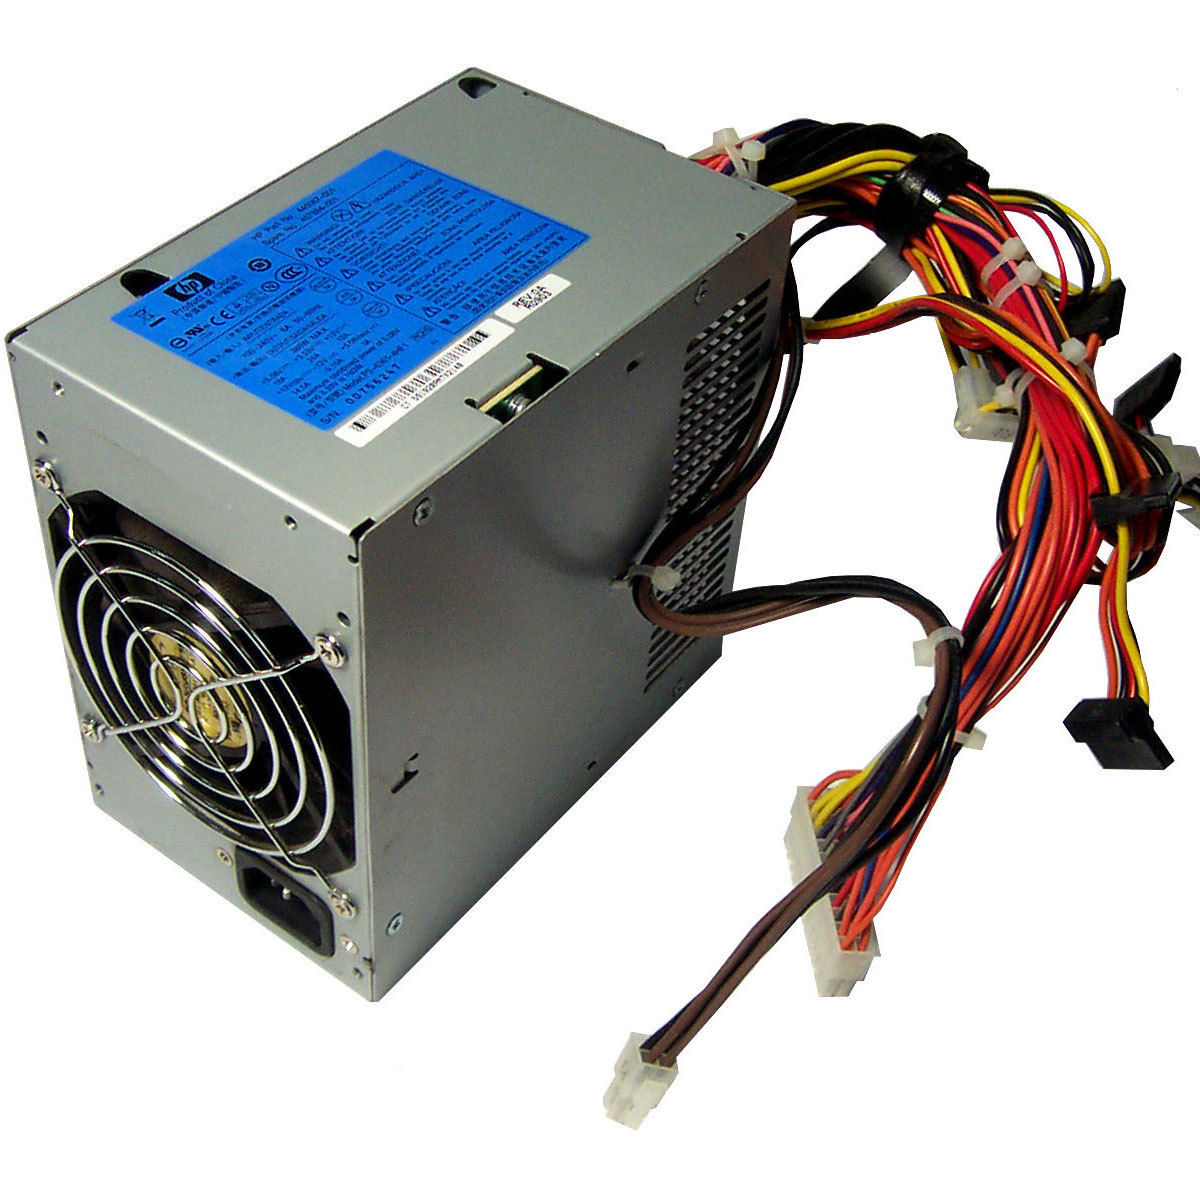 457884-001 - HP 365-Watts Power Supply for Porliant Ml110 G5 - HP